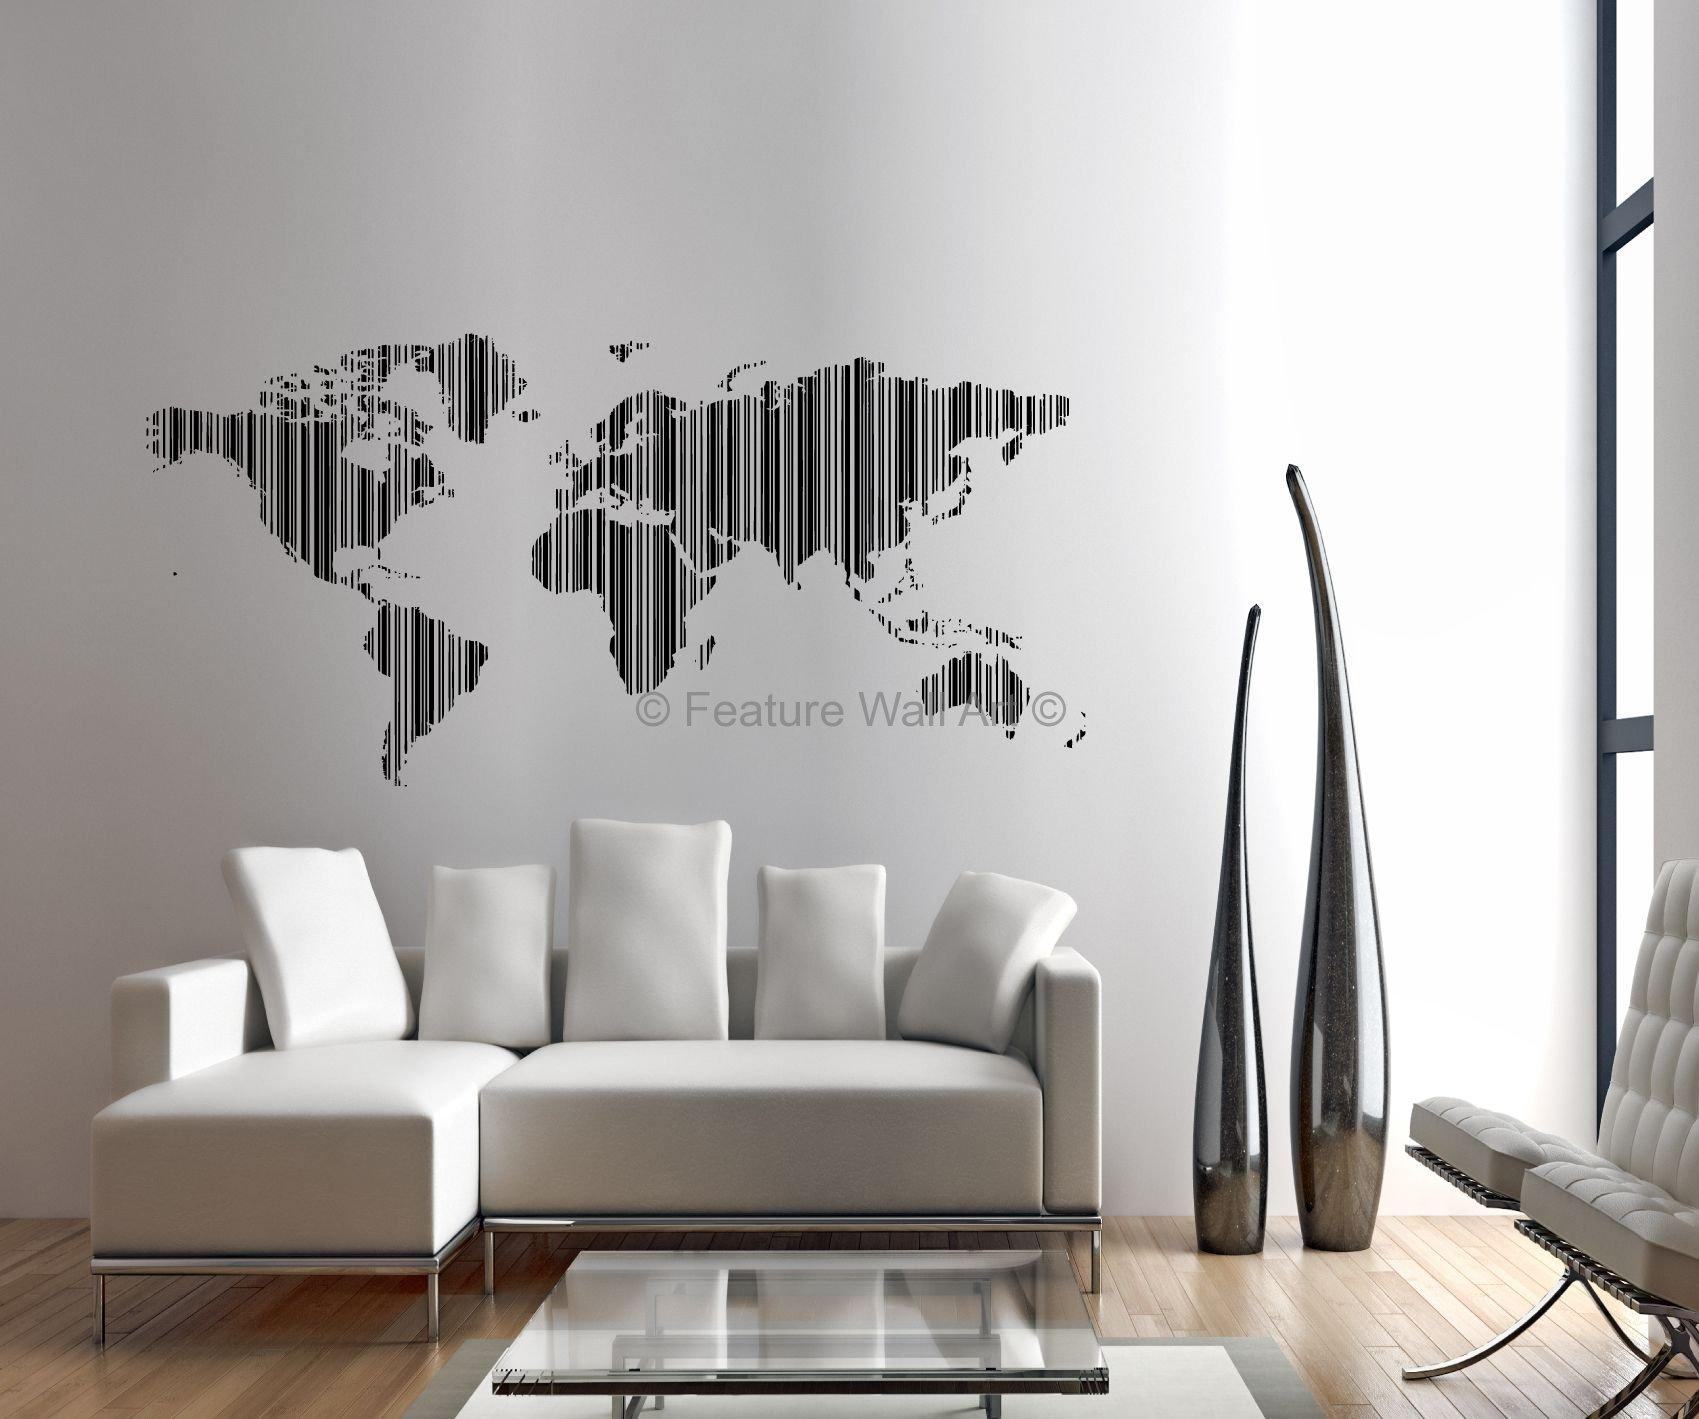 Amazing Ideas For Wall Art Above Bed Modern Wall Art Ideas Wall Intended For Wall Art Over Bed (Image 4 of 20)